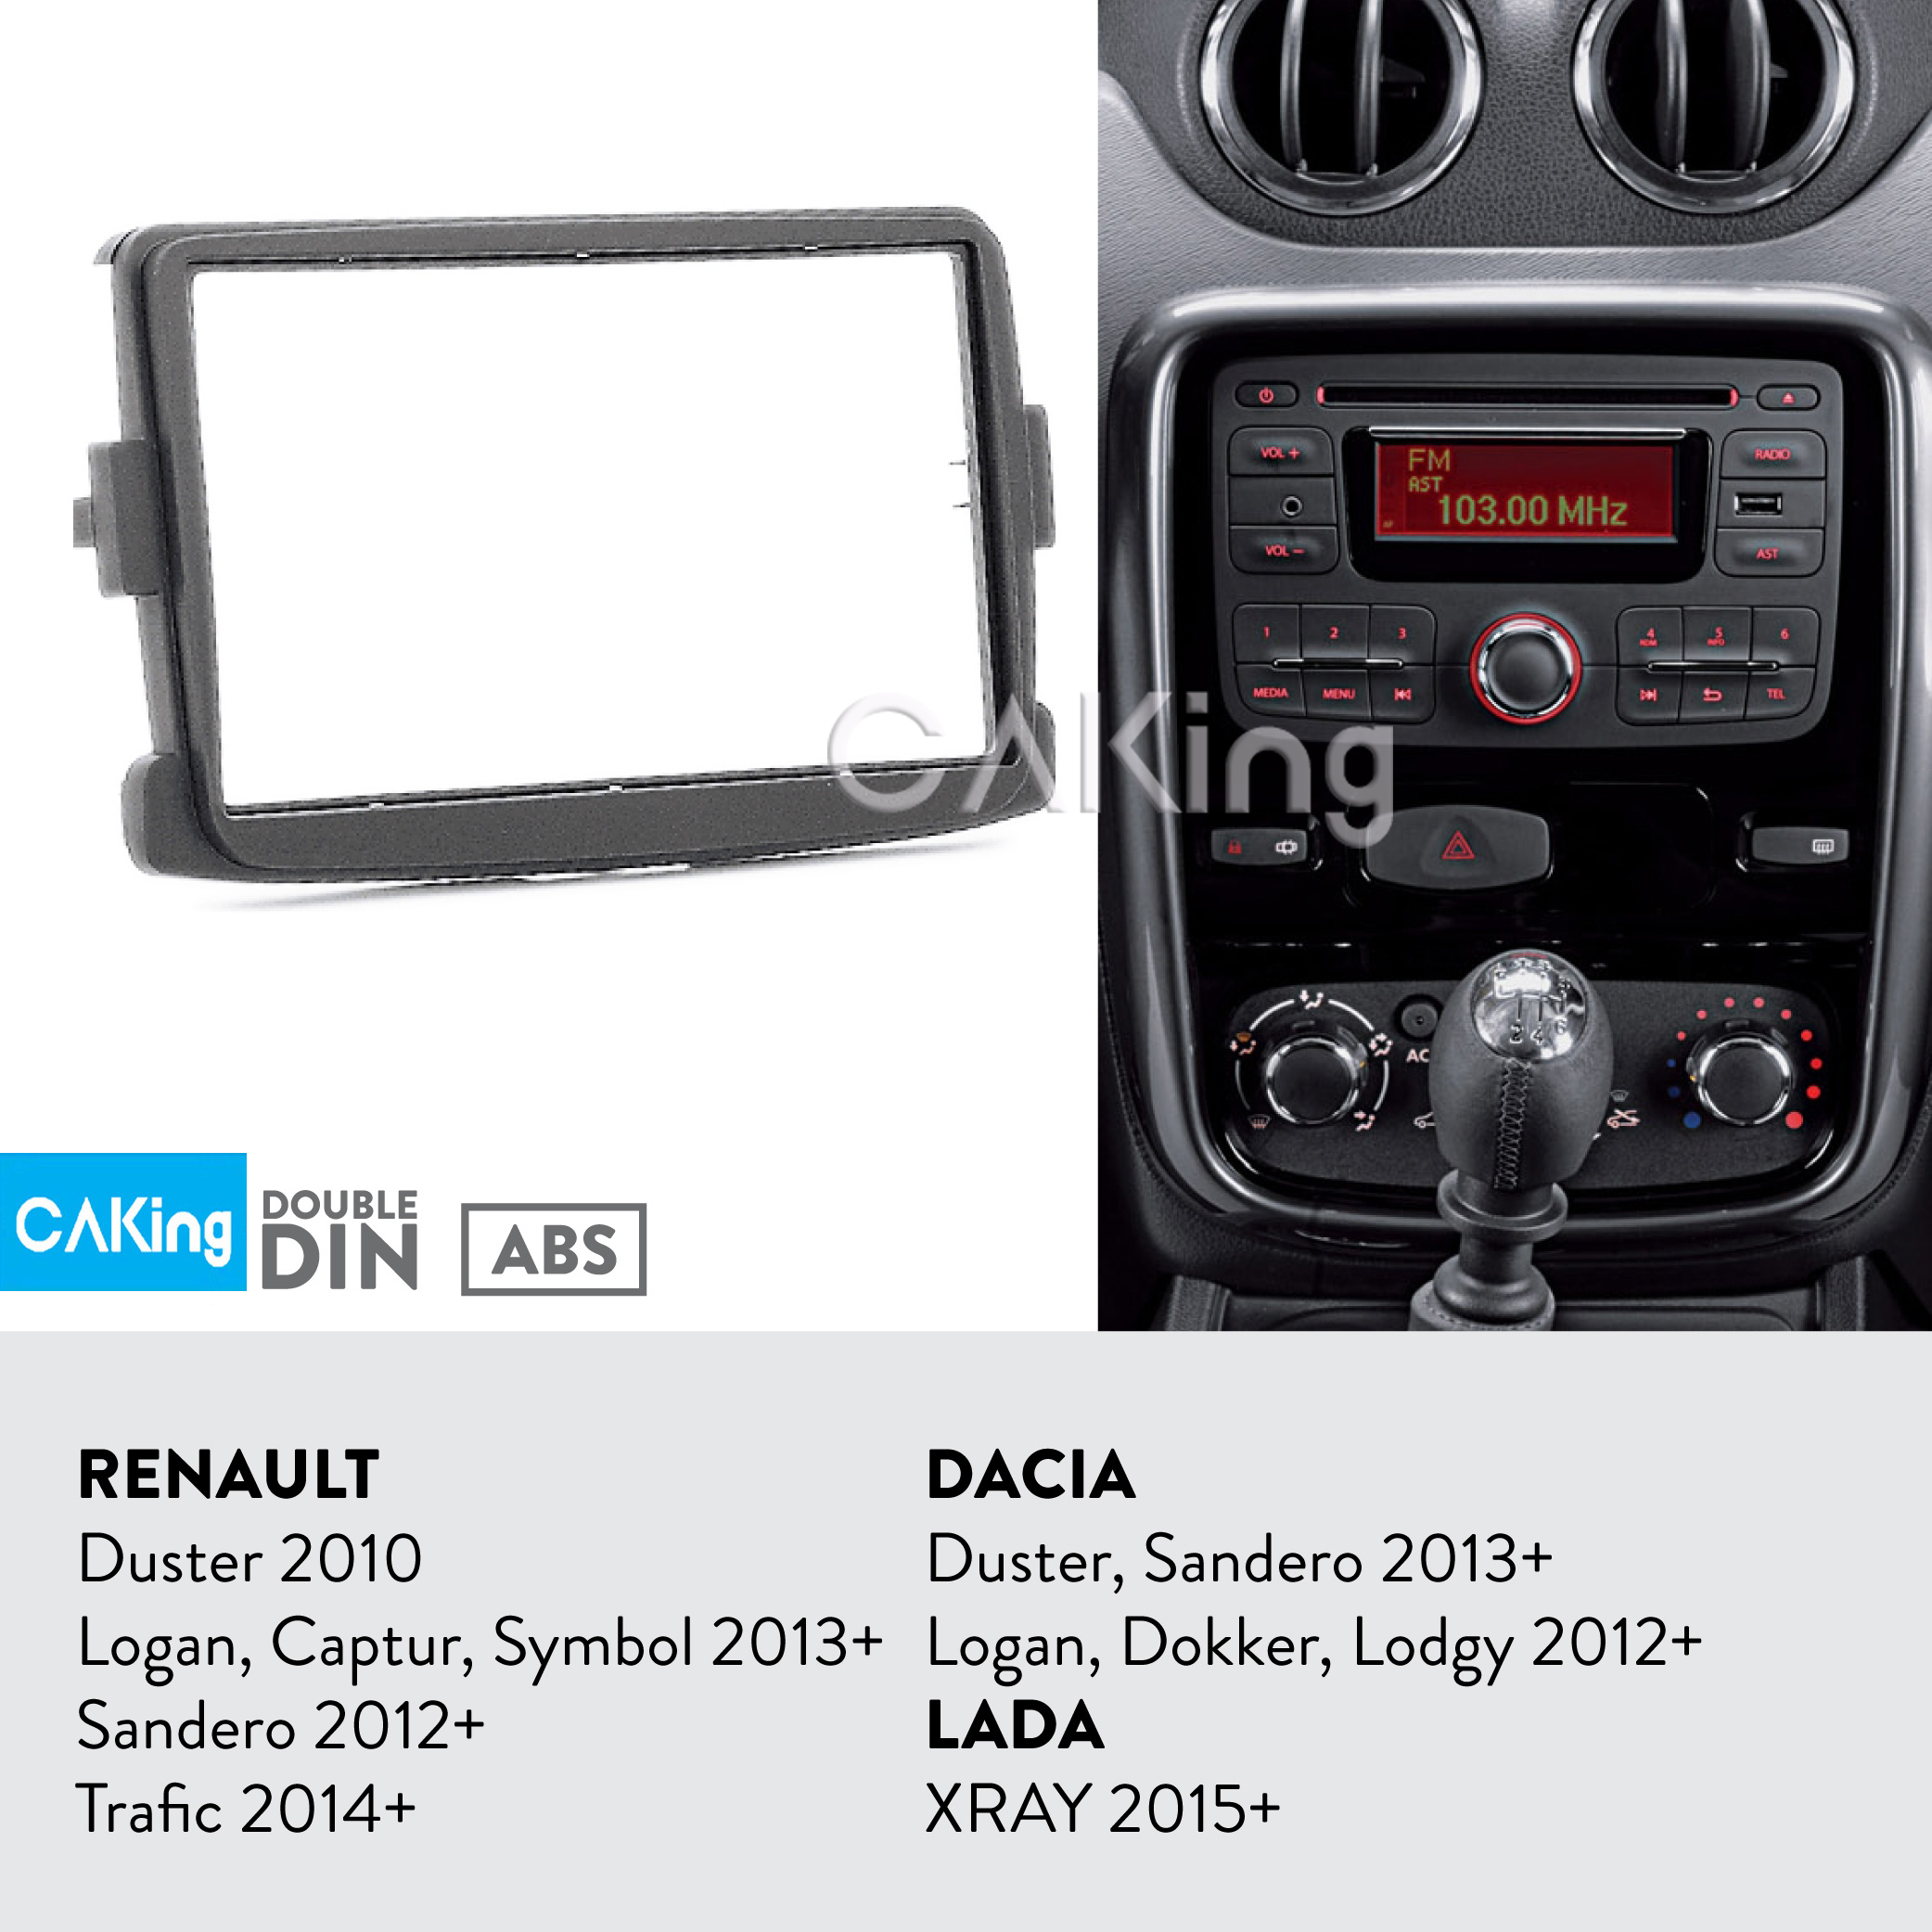 Car Fascia Radio Panel for RENAULT Duster 2010+; Logan, Captur, Symbol 2013+; Sandero 2012+; Trafic 2014+ Dash Kit Adapter Bezel-in Fascias from Automobiles & Motorcycles